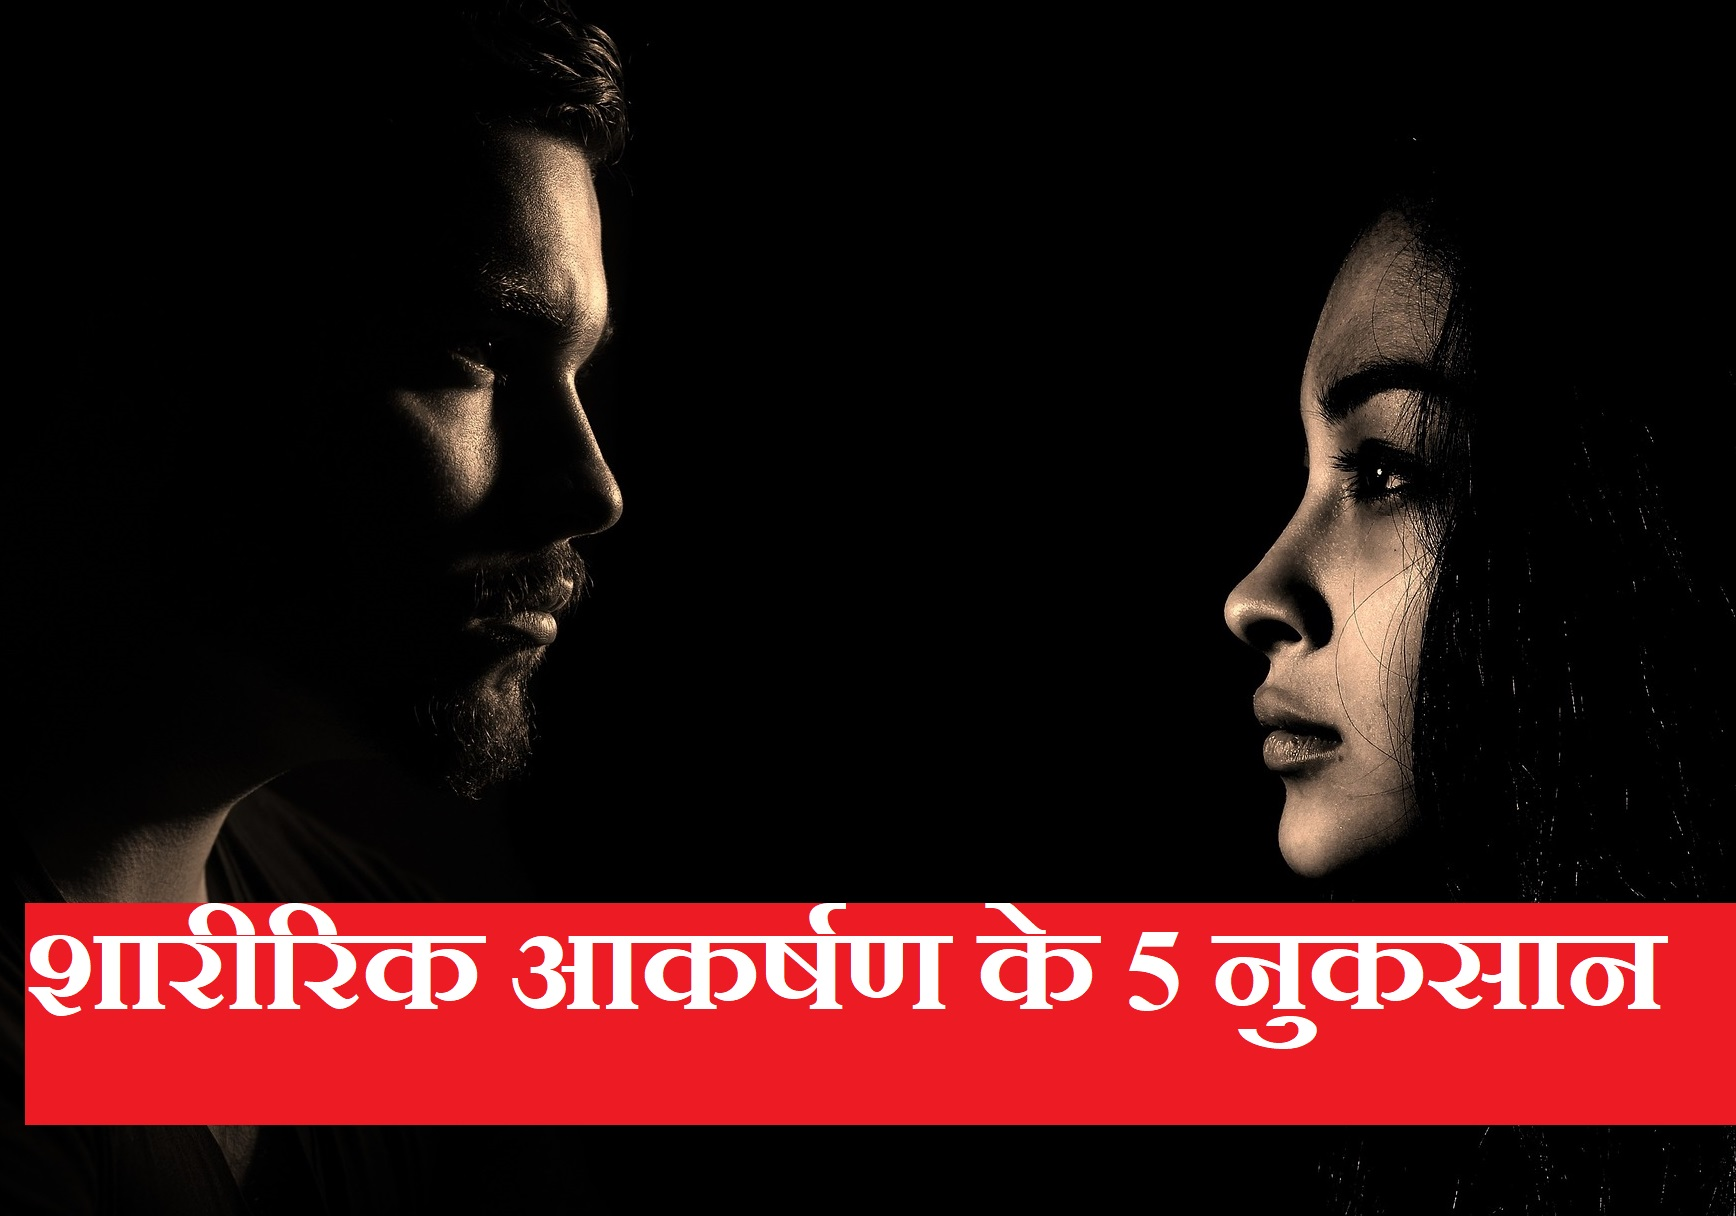 शारीरिक आकर्षण के 5 नुकसान,5 Harm Loss Of Physical Attraction In Hindi,Physical Attraction nuksan,what is love or lust in hindi,sex wala pyar